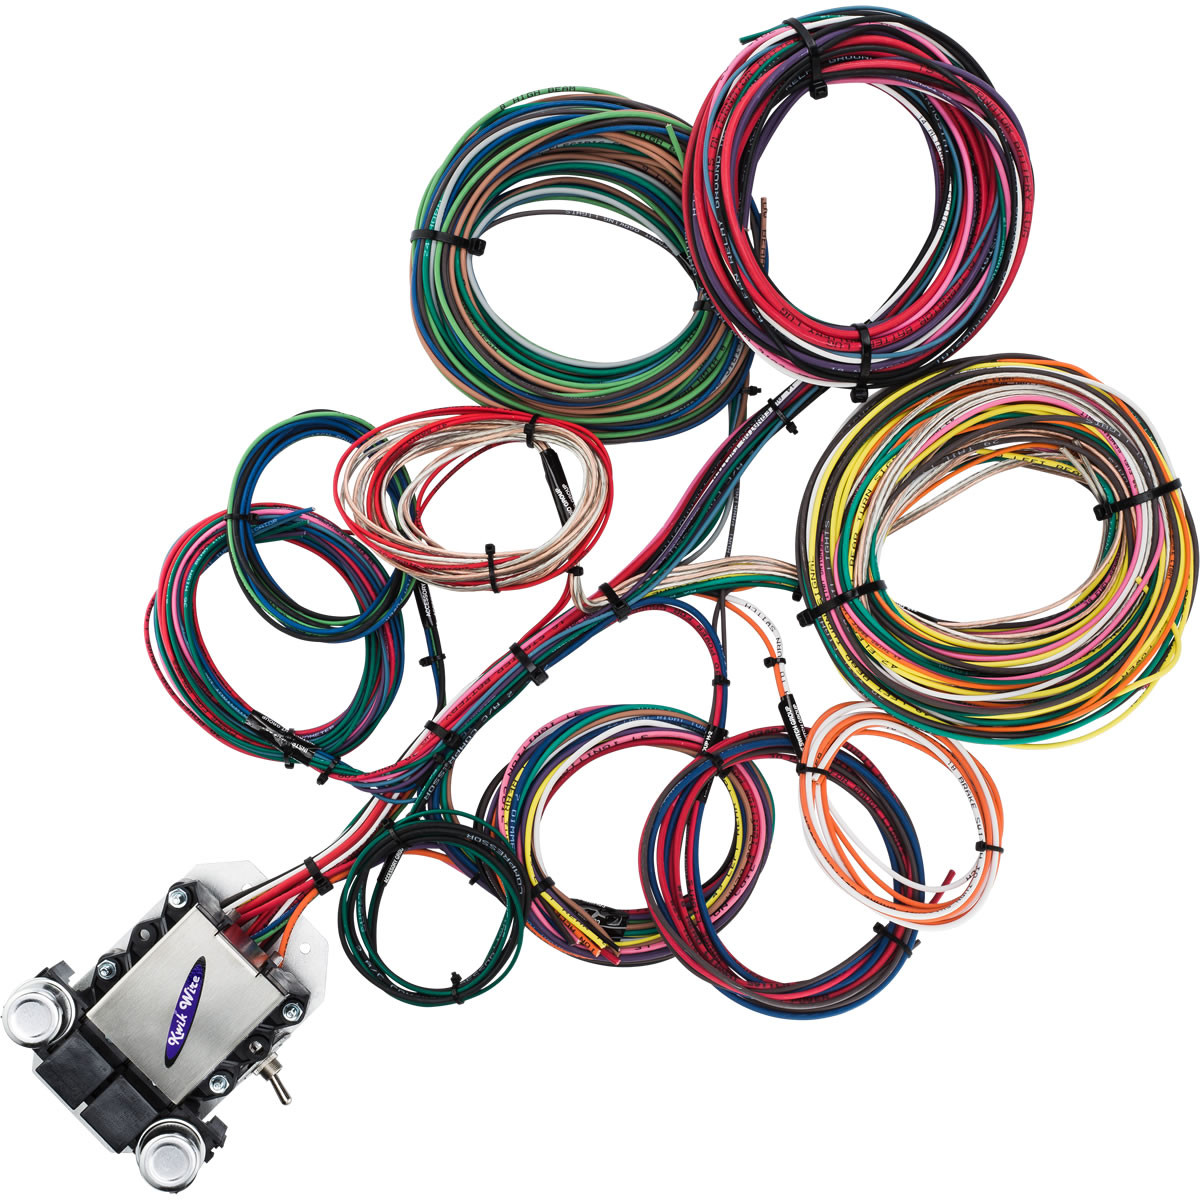 14 Circuit Wire Harness KwikWire Com Electrify Your Ride